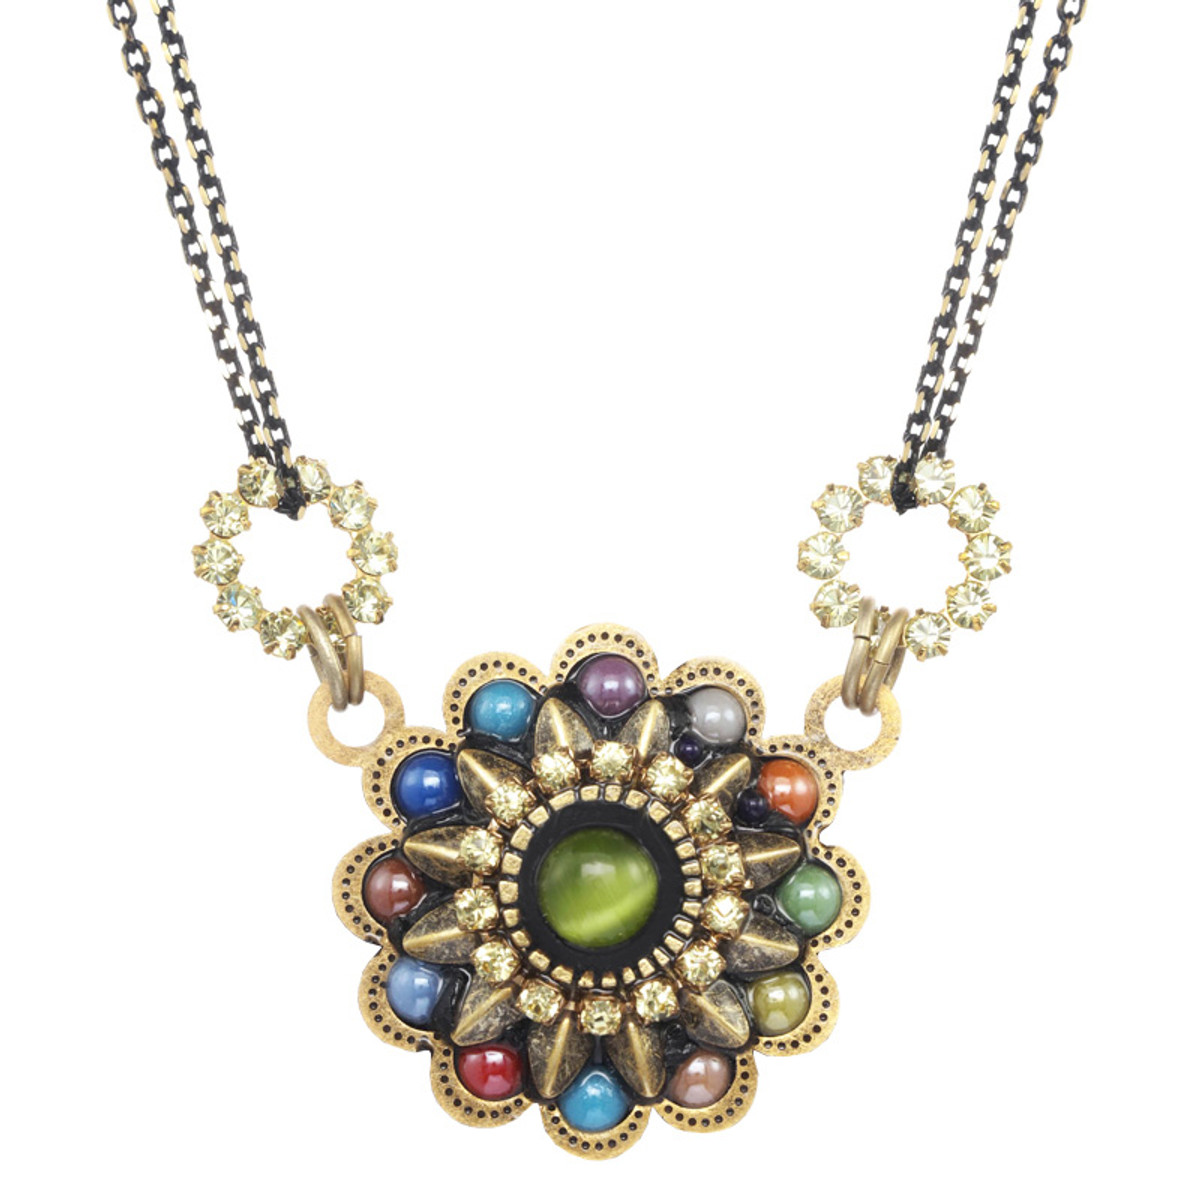 Michal Golan kaleidoscopic Small Flower Neccklace by Michal Golan